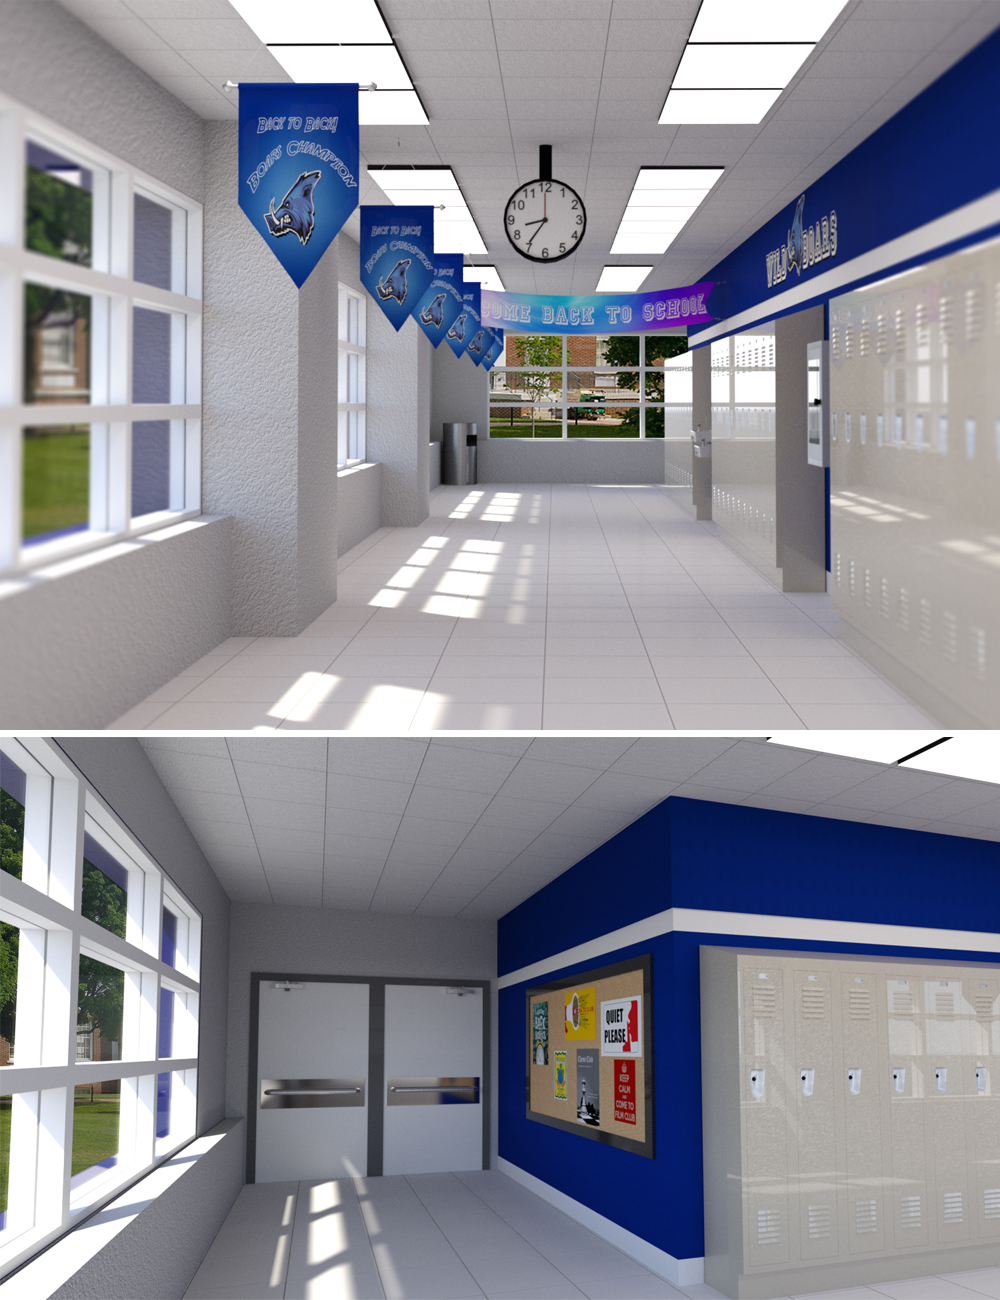 Highschool Hallway by: Digitallab3D, 3D Models by Daz 3D